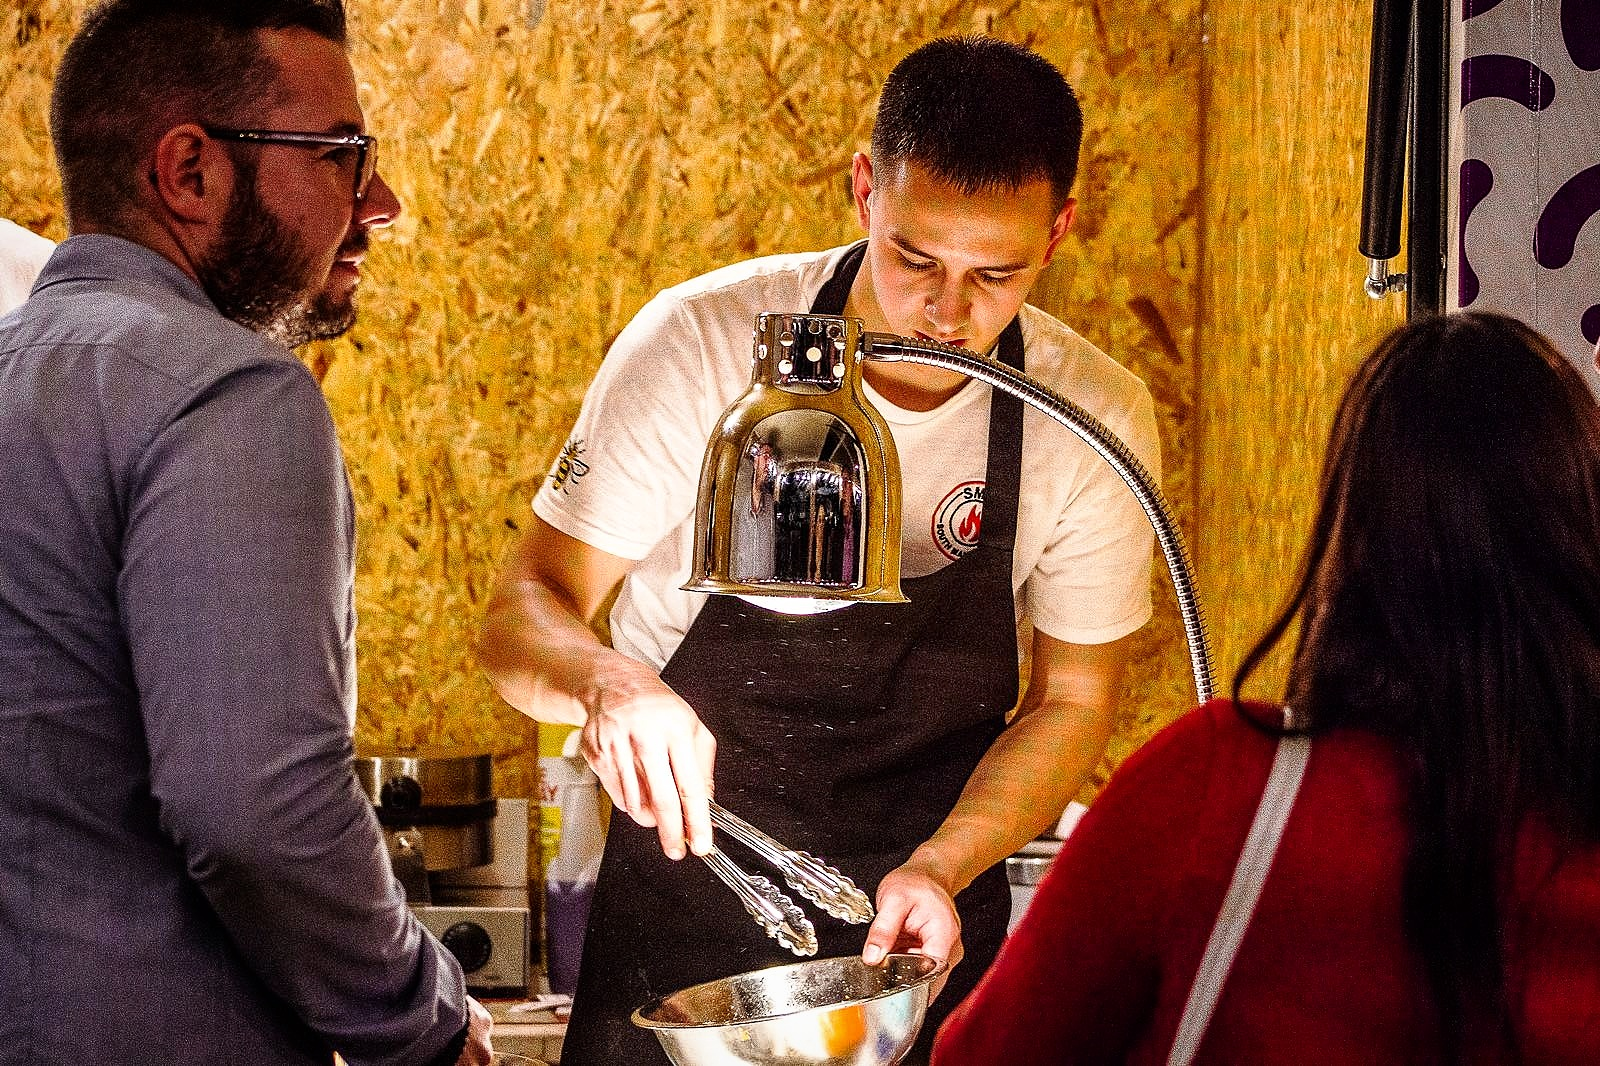 About Aaron - After spending several years under the guidance of some of the most prestigious chef's in Europe Aaron discovered his passion for Street Food. In a bid to stand out he developed his unique herb and rosemary infused waffles to accompany the SMF flavourful and succulent fried chicken. From cooking in his backyard for his friends and neighbours word of SMF grew and it soon became one of the most esteemed street food vendors in Manchester.Aaron aims to inspire young chefs to pursue their dreams, to fill the street food scene with exotic flavours and up and coming entrepreneurs. All in order to affirm Manchester as having one of the most authentic and appreciable Street Food scenes on the map.